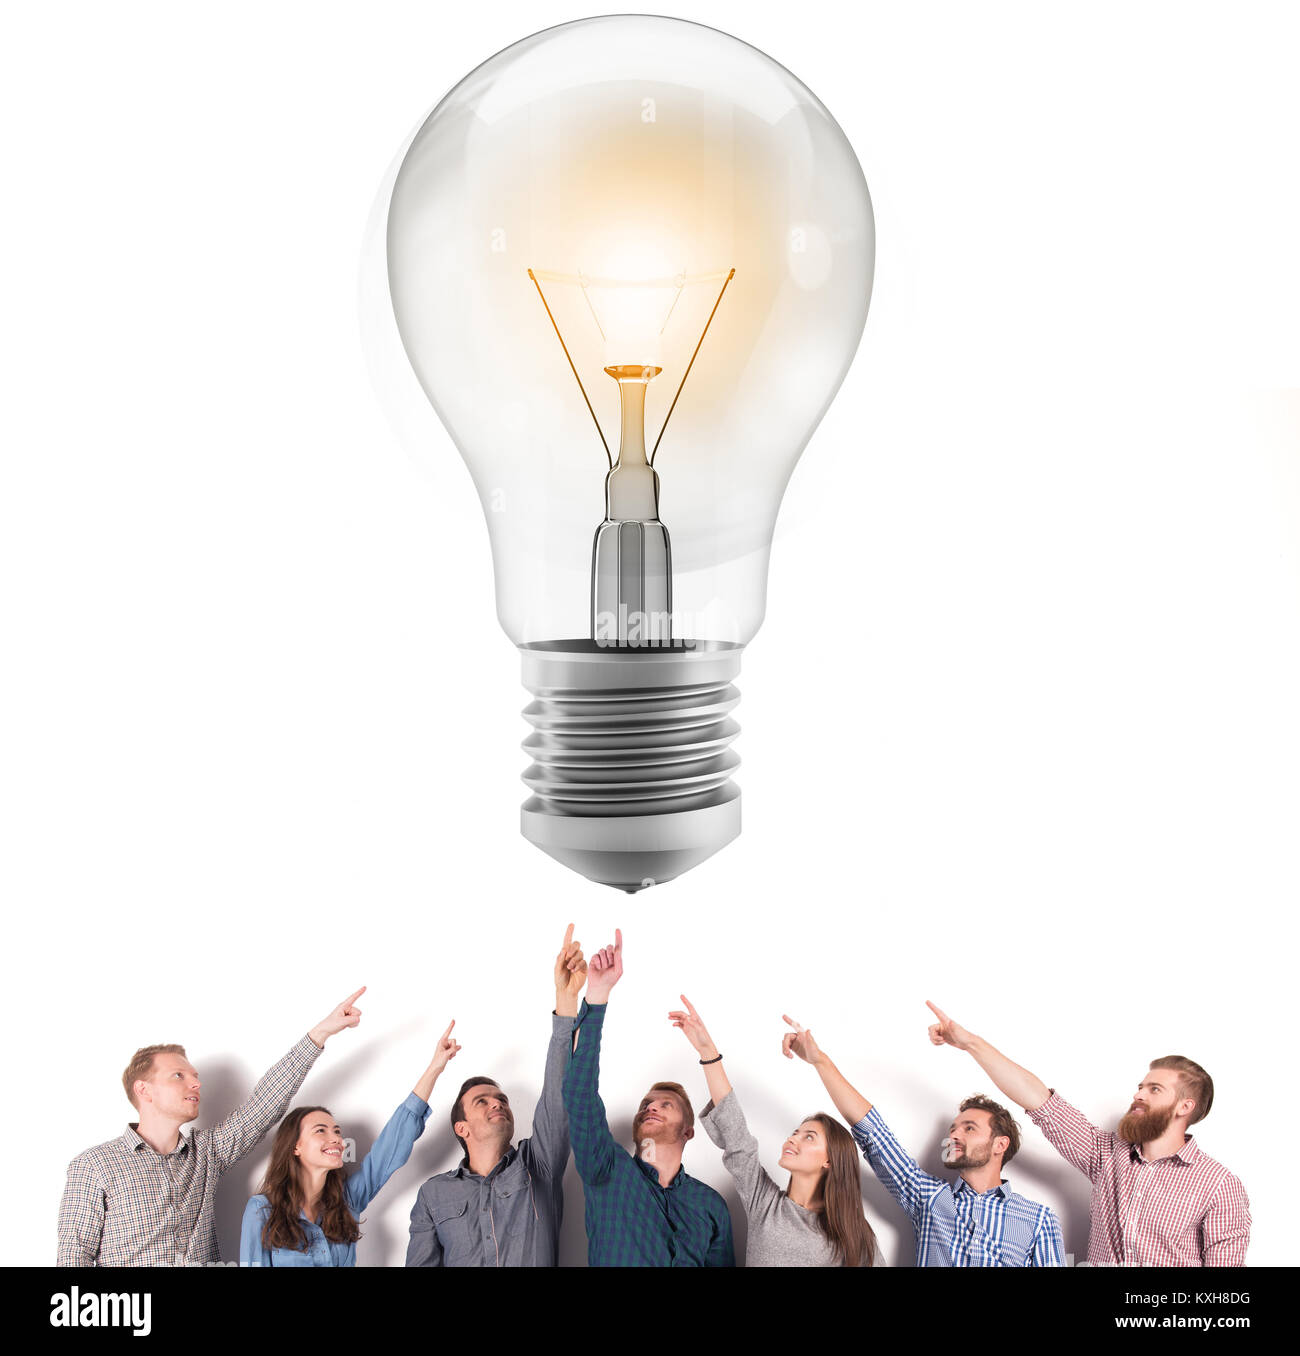 Brainstorming concept with businessmen that indicate an a lamp. Concept of idea and company startup - Stock Image